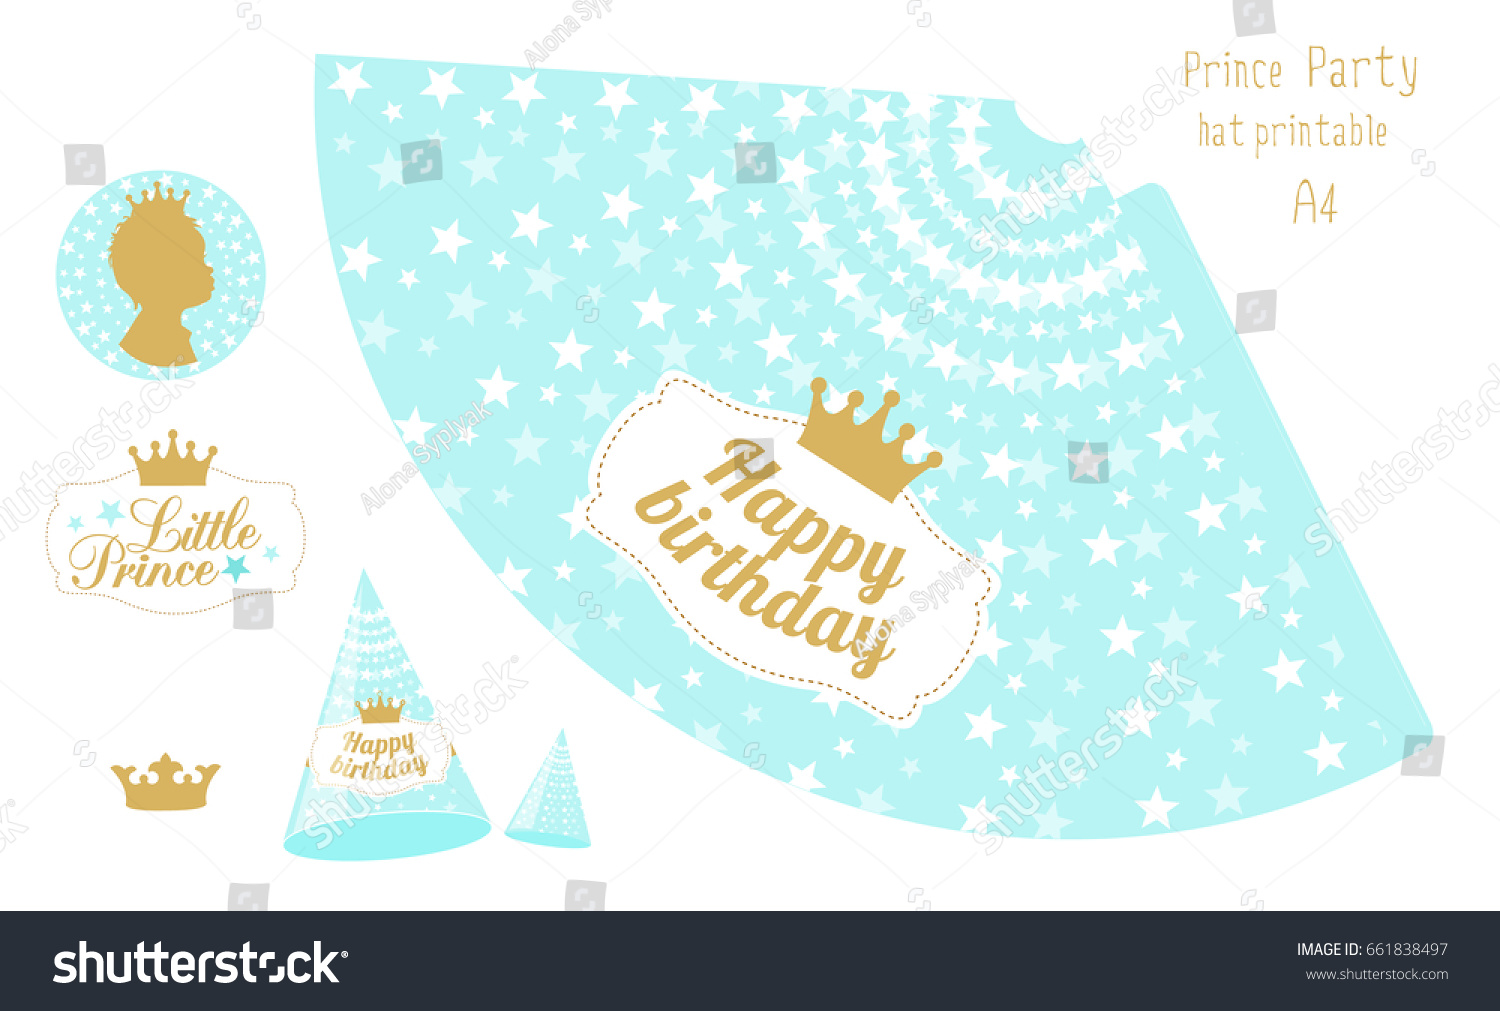 Party hats printable blue gold prince stock vector royalty free party hats printable blue and gold prince party print and cut happy birthday maxwellsz